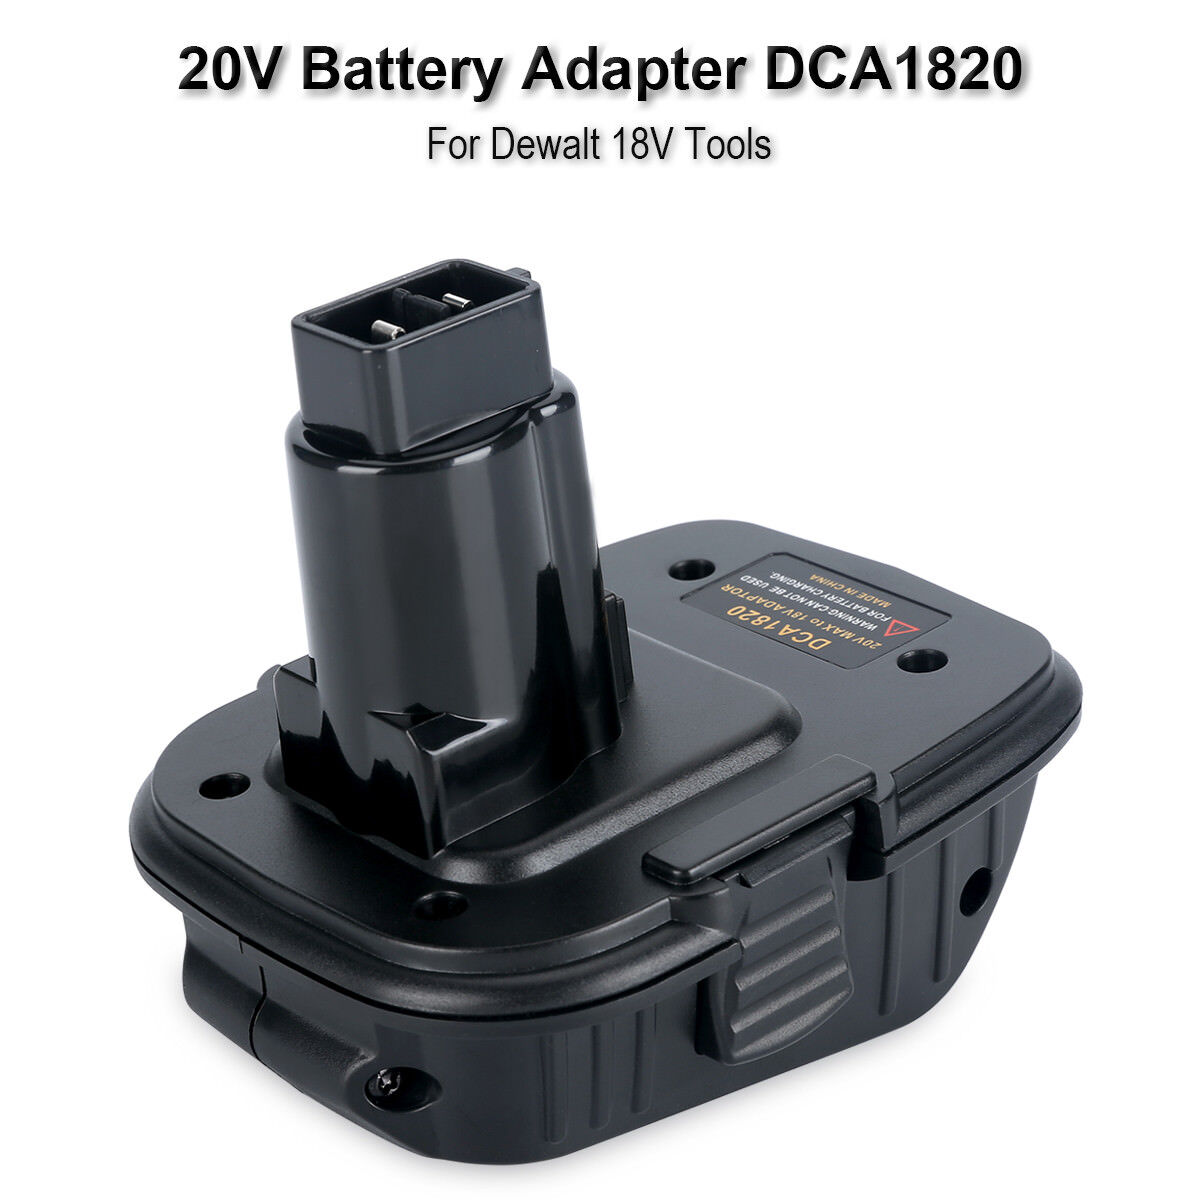 New DCA1820 Battery Adapter for Dewalt 18V Tools, to Convert